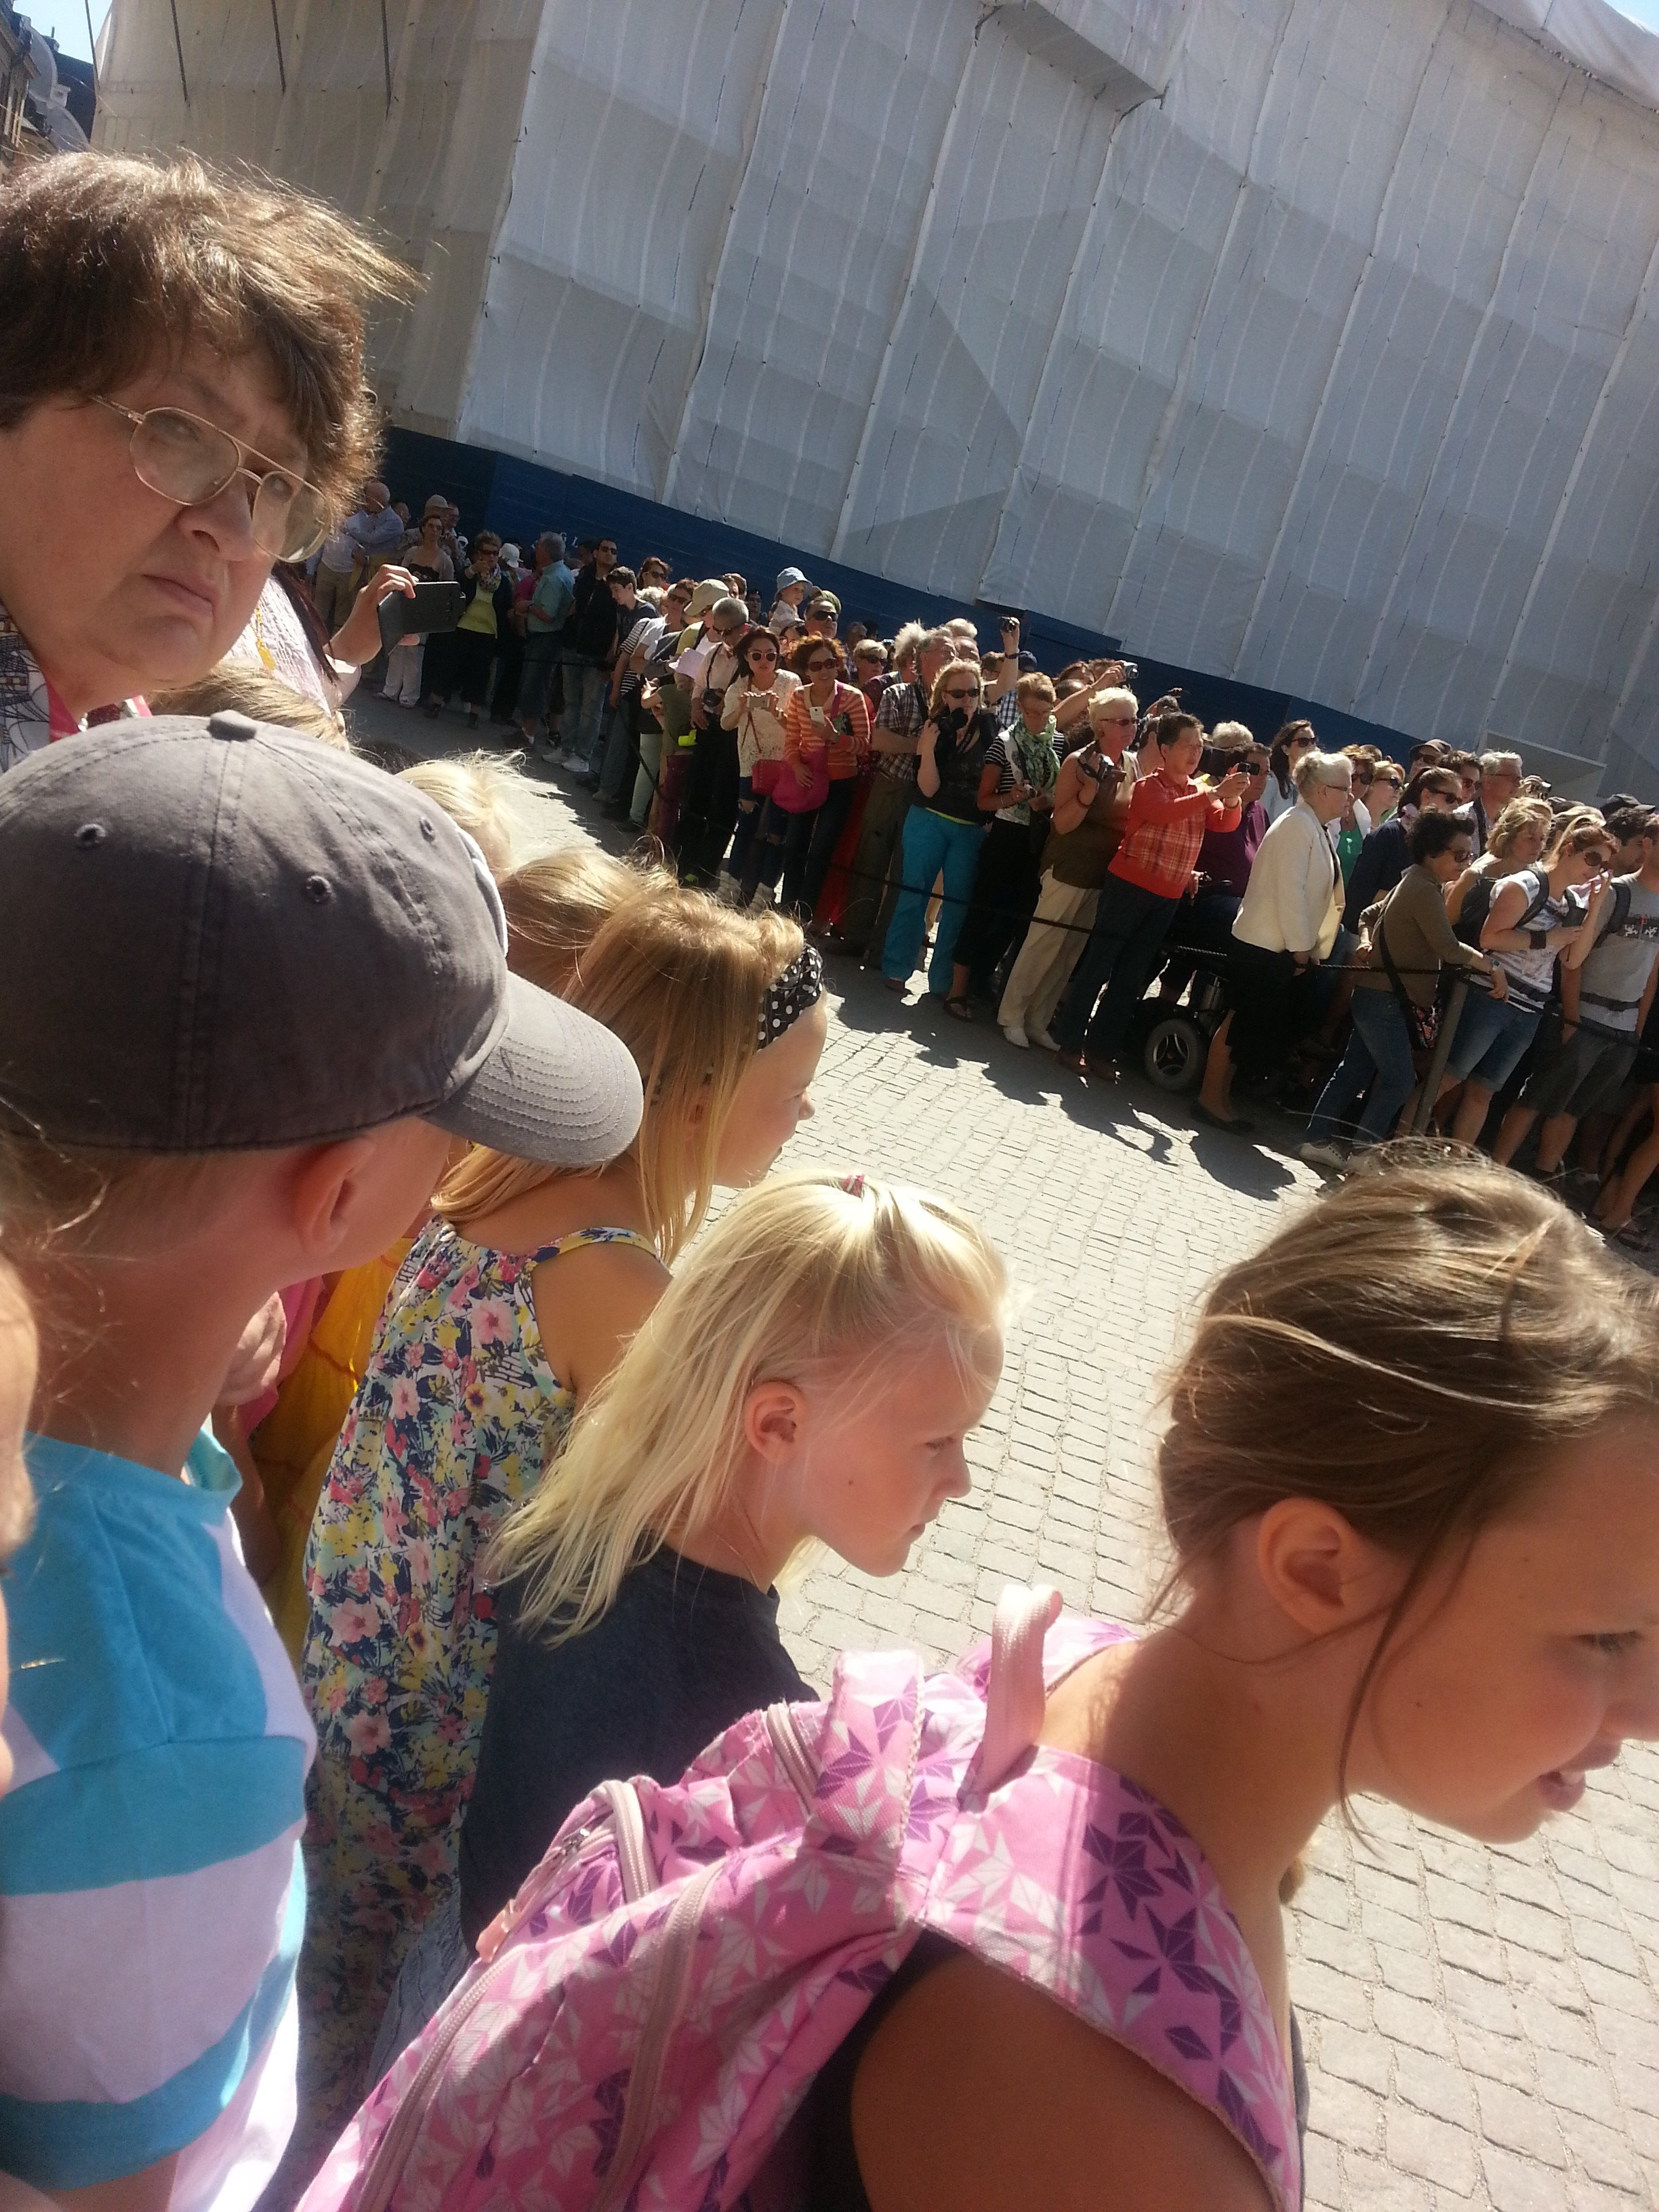 Kids were standing to see pirate of changing guard at Stockholm's Royal Palace (Photo by the Author)